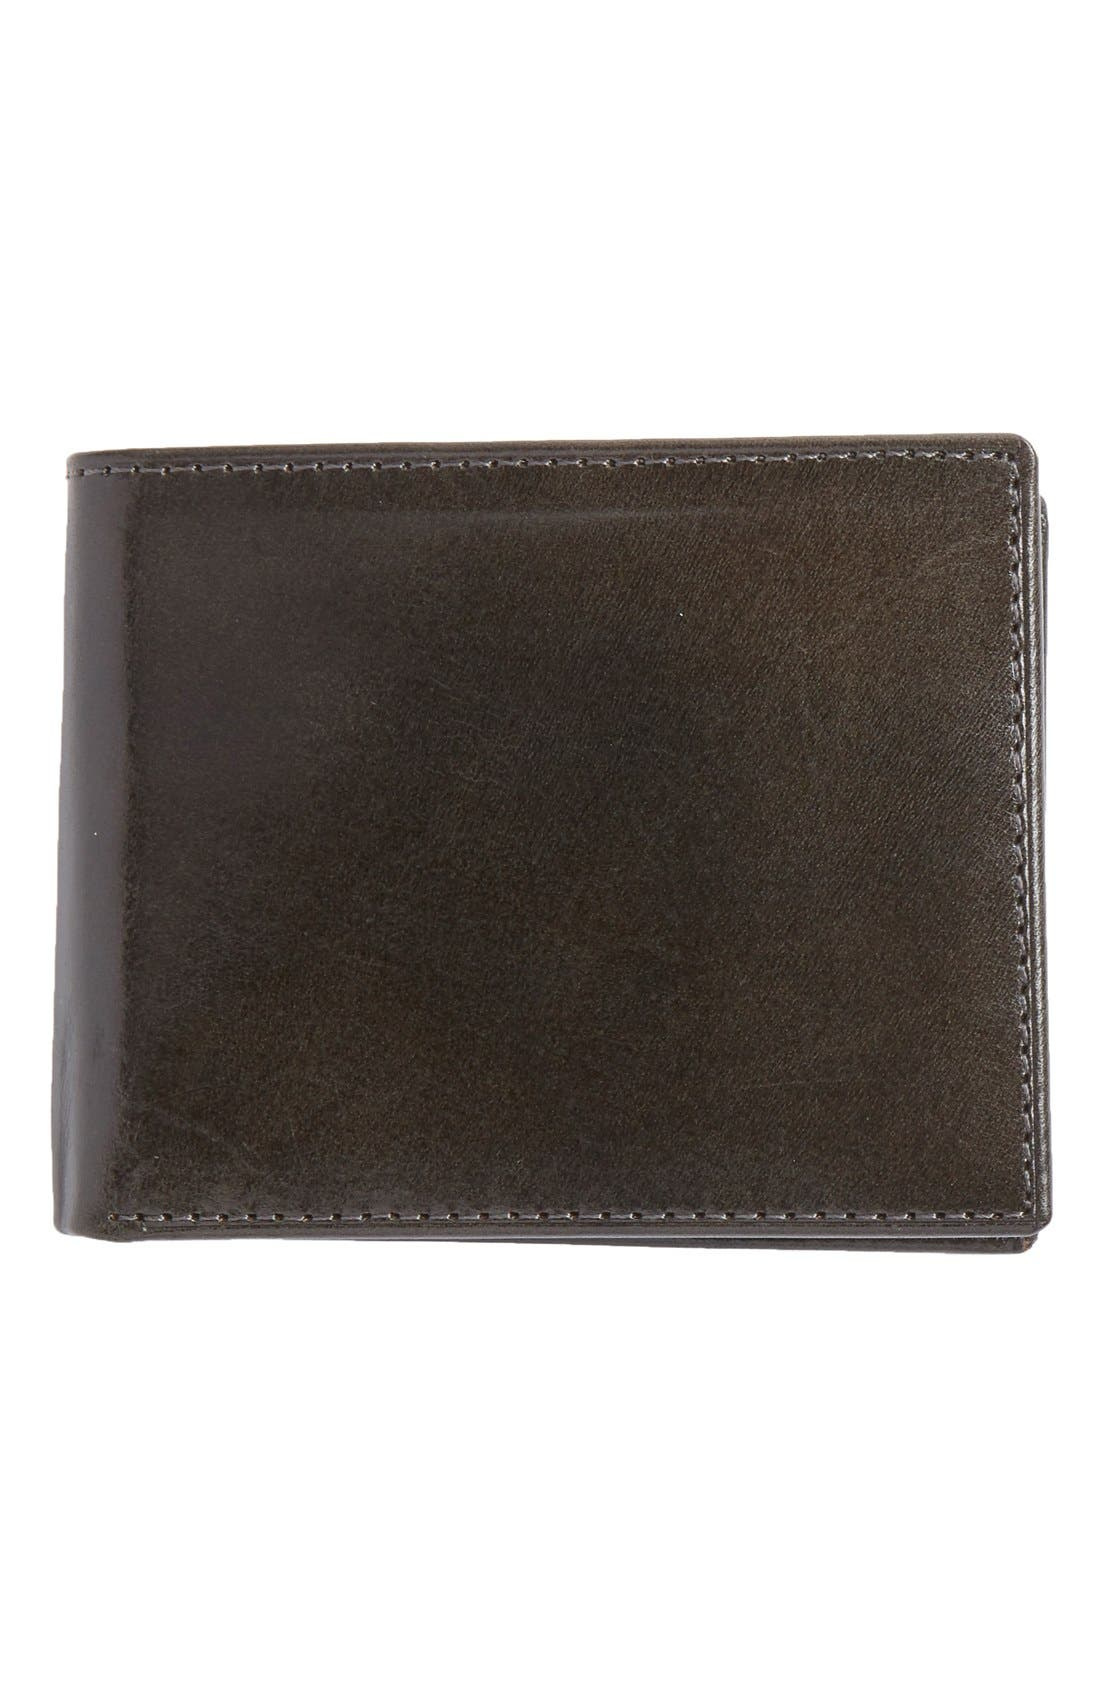 Flip Billfold Leather Wallet,                             Main thumbnail 1, color,                             CHARCOAL